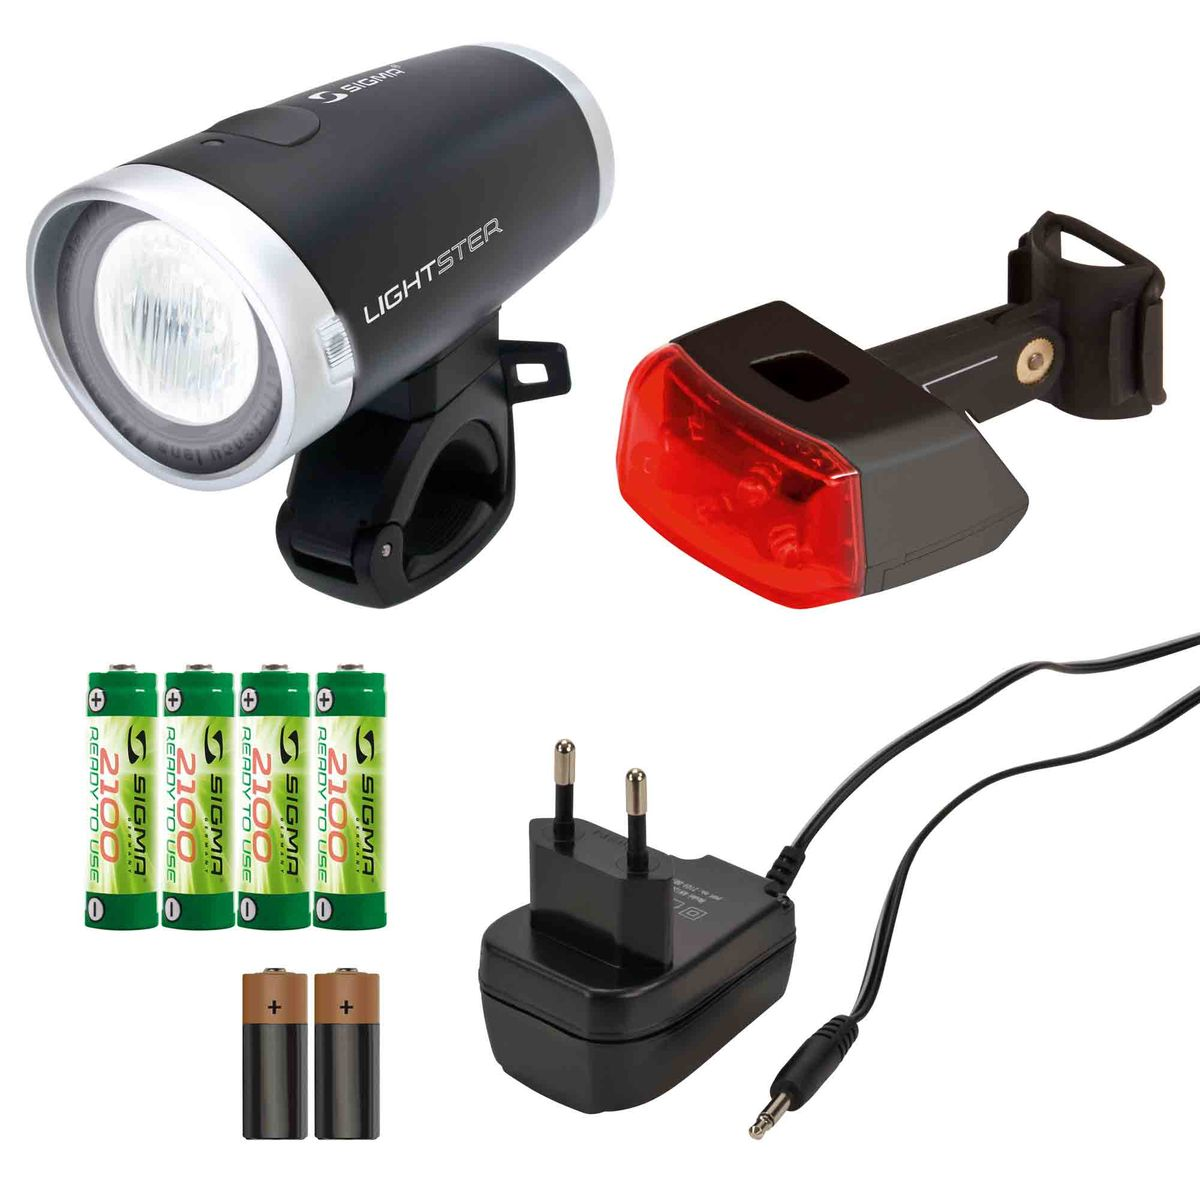 Lightster/Cuberider II Light Kit